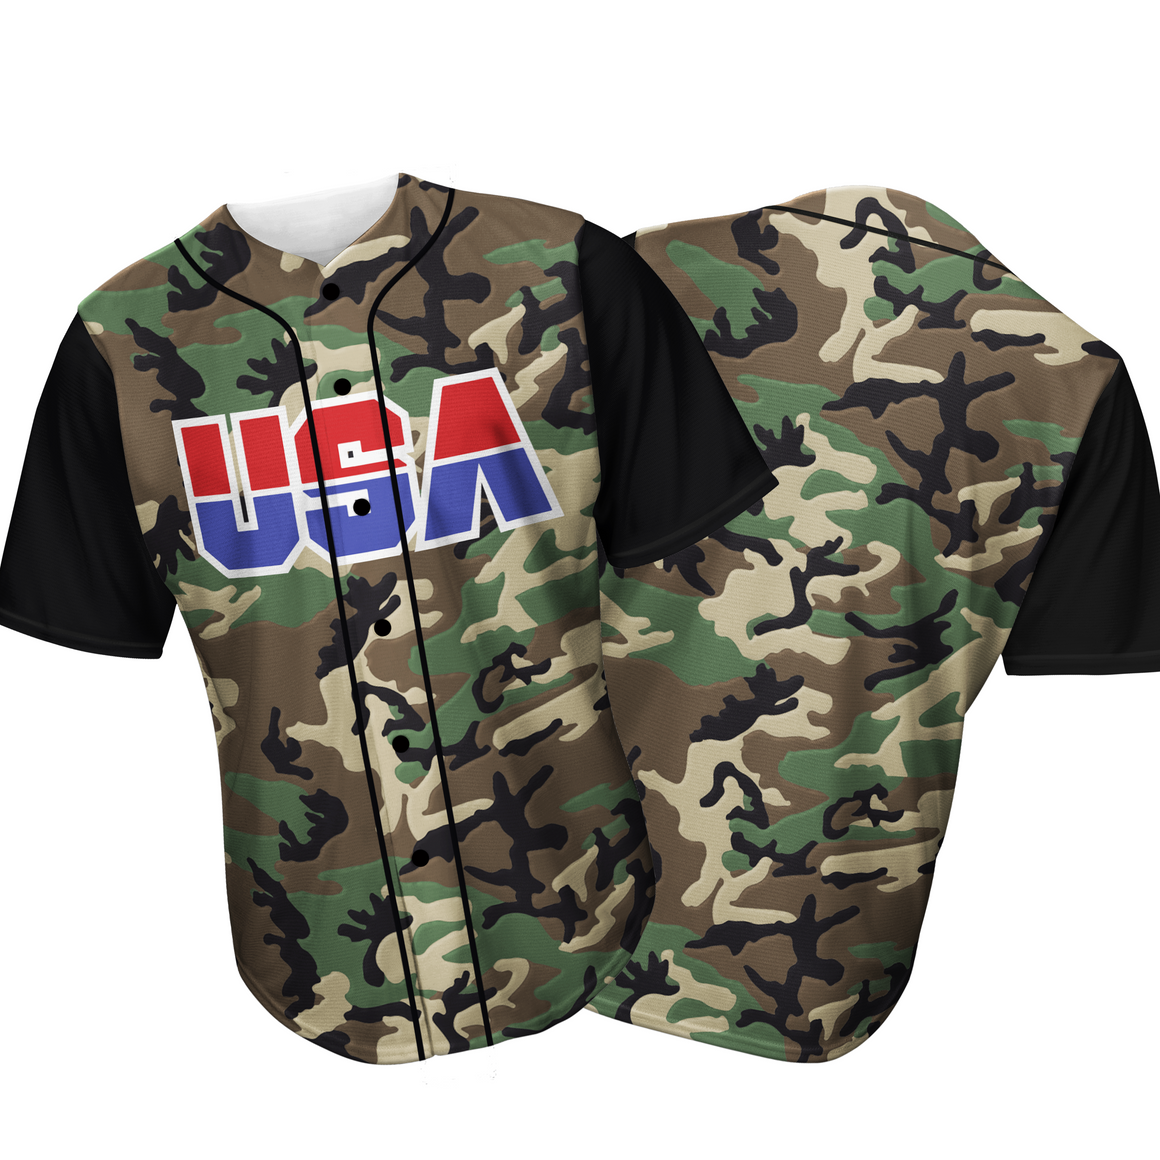 USA Baseball Jersey Camo (Green)